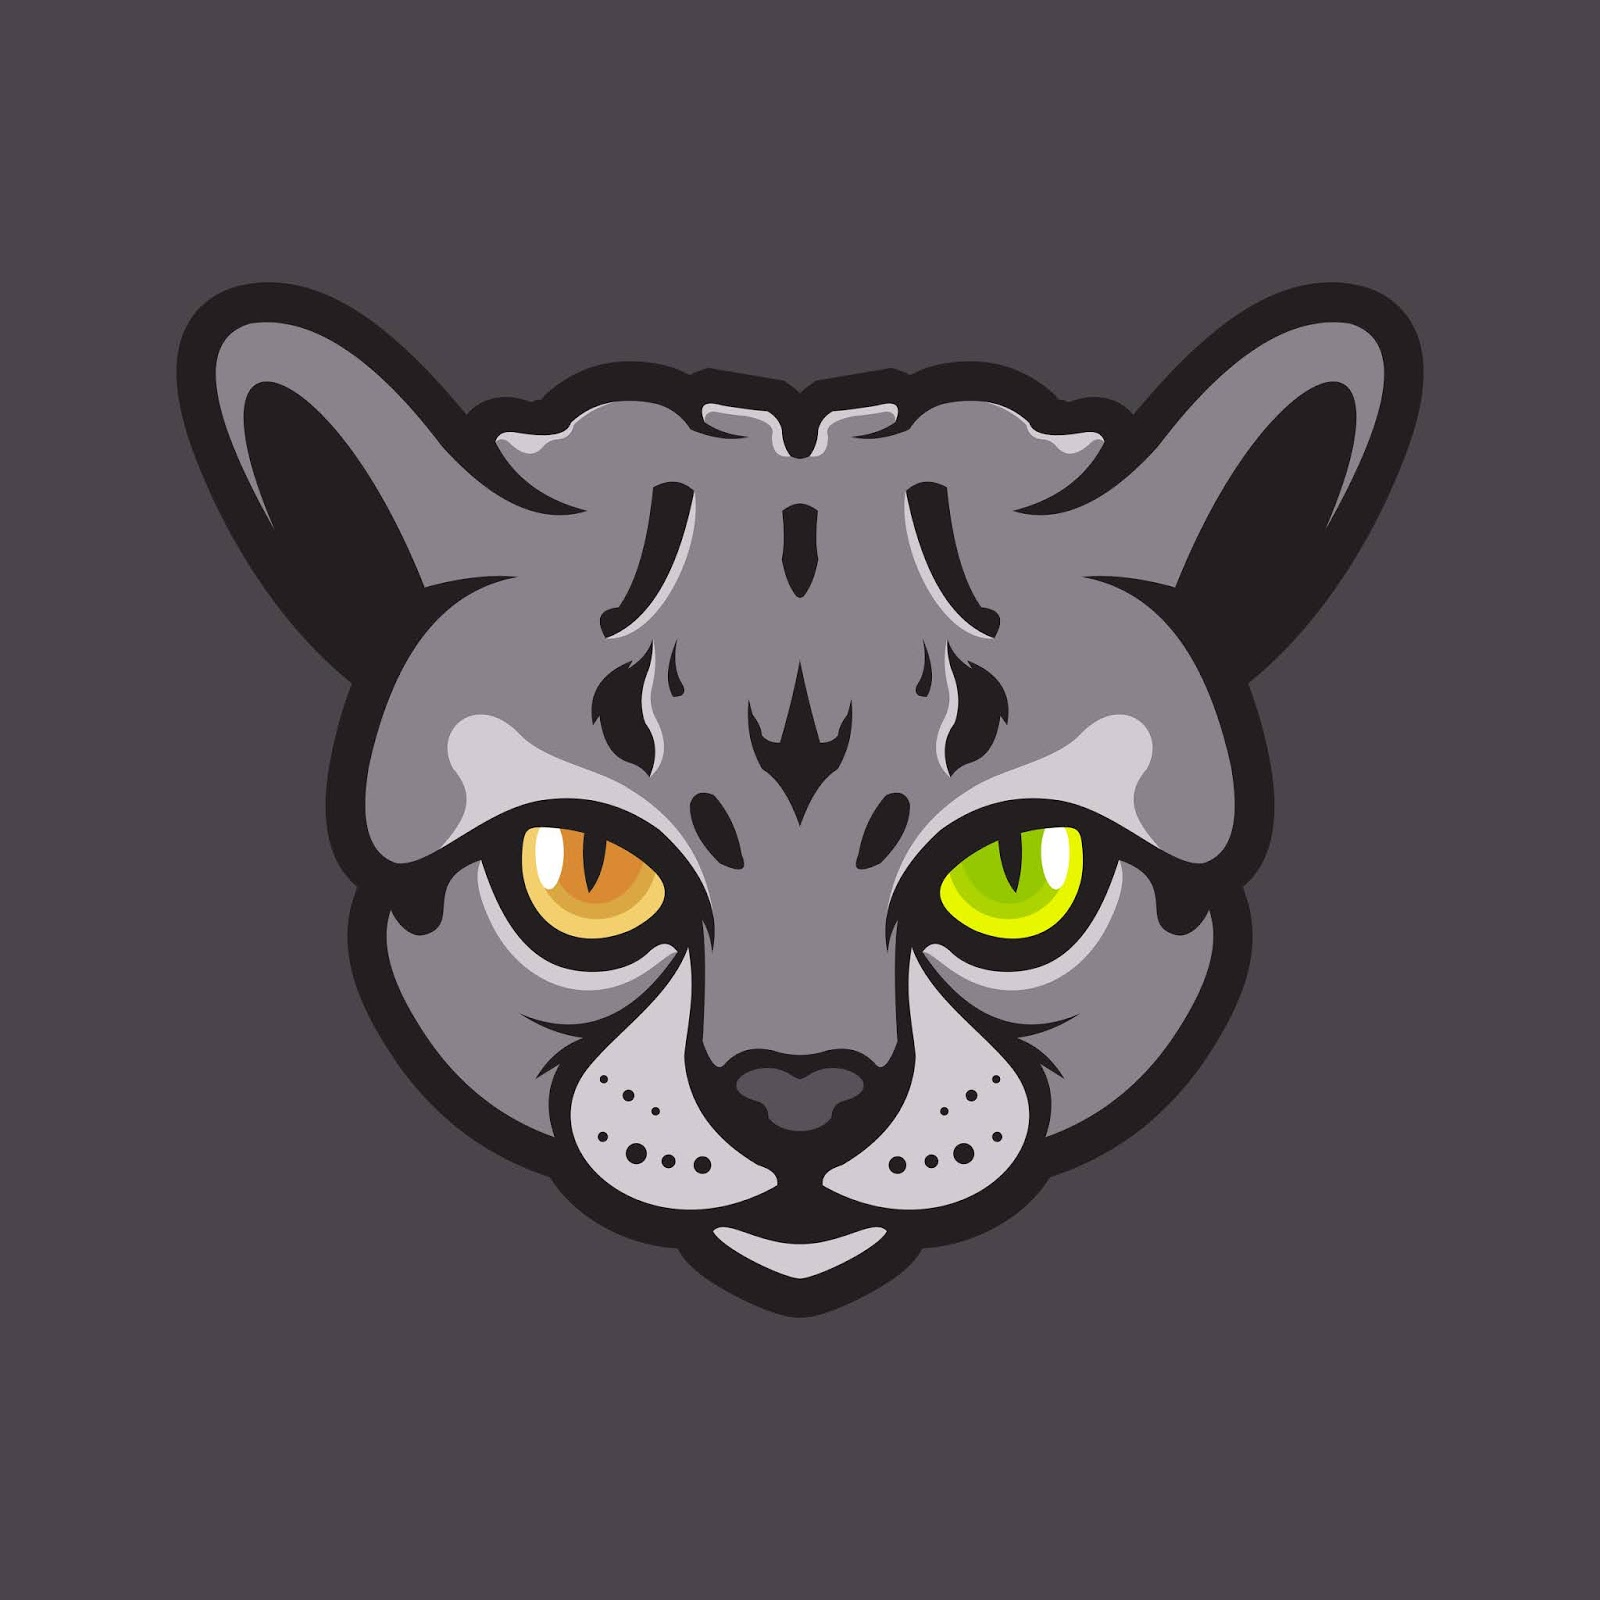 Cat Head Illustration Free Download Vector CDR, AI, EPS and PNG Formats